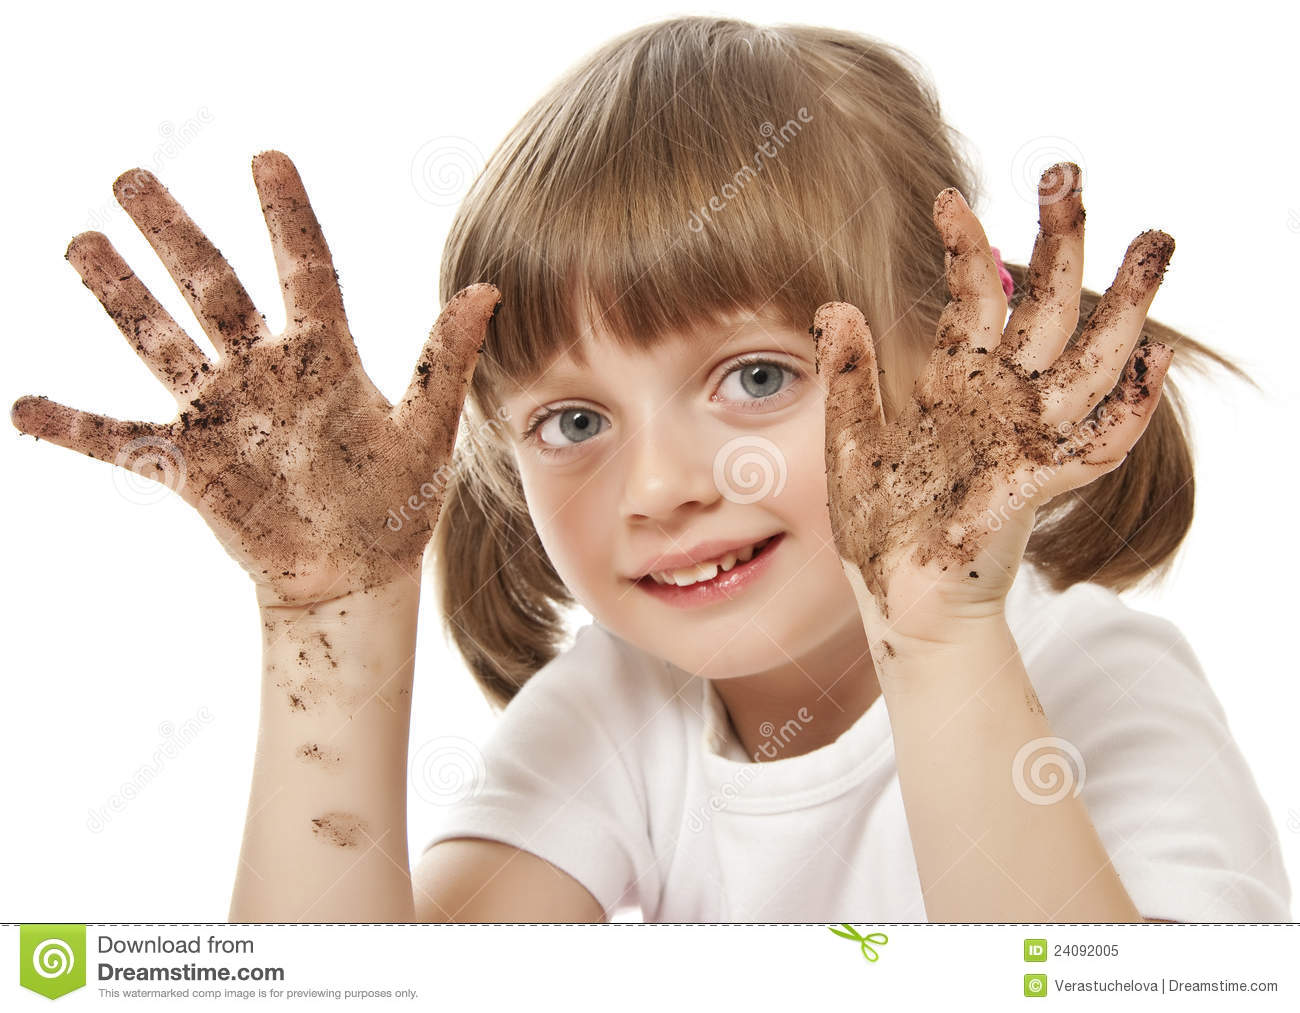 Dirty Hand Royalty Free Stock Photo - Image: 24092005